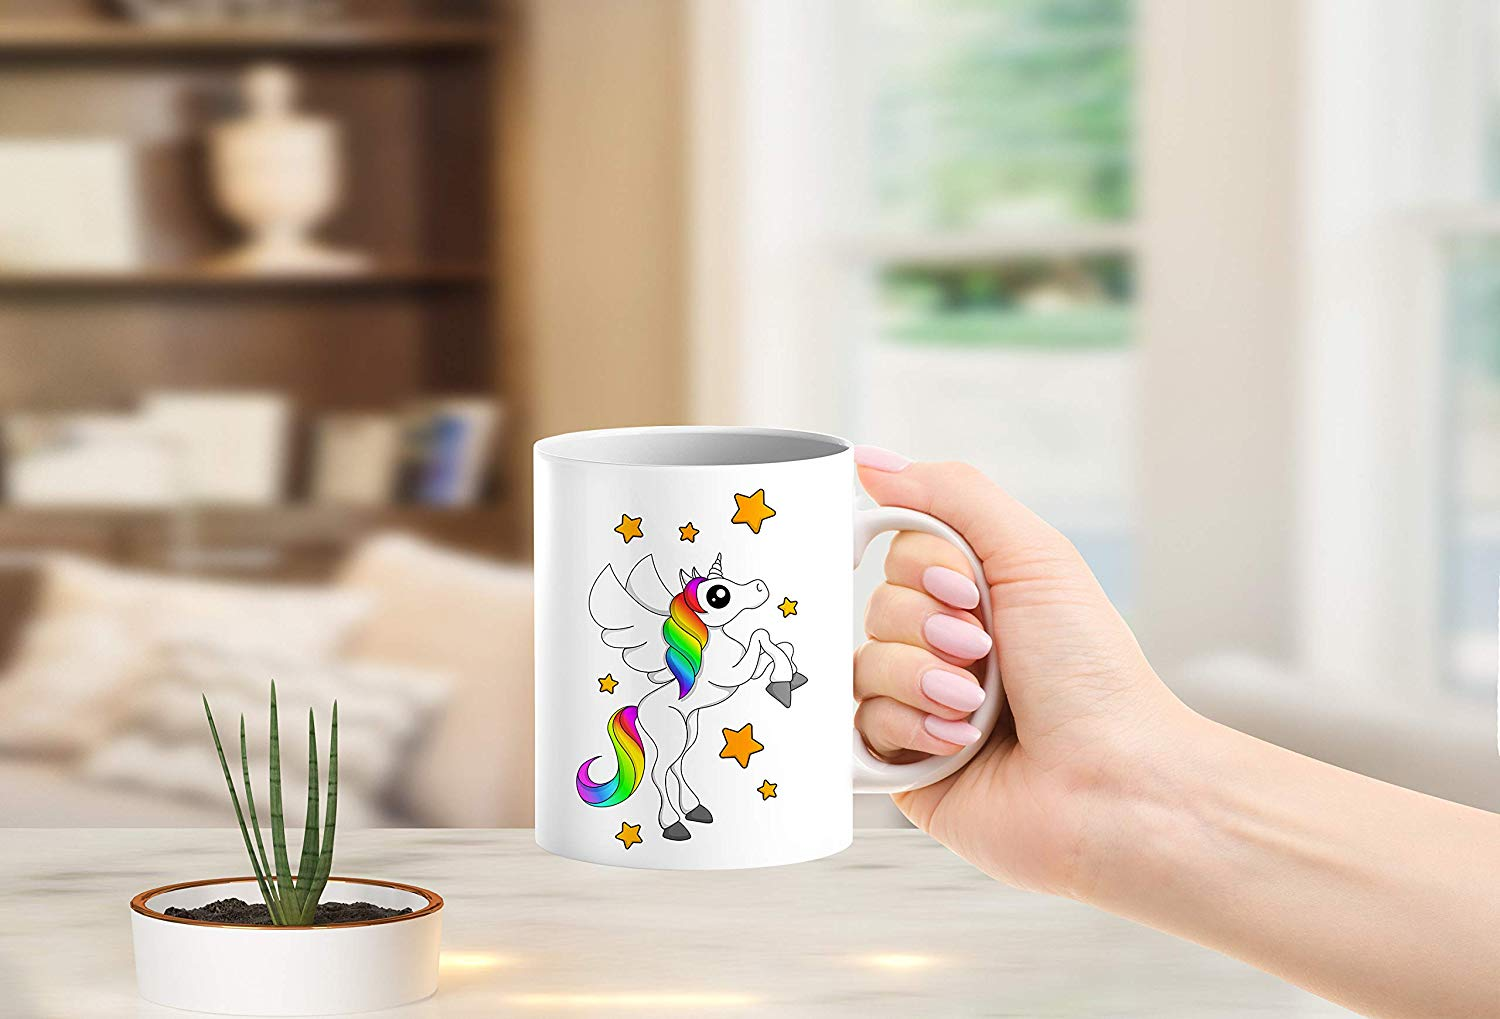 Heat Sensitive Color Changing Coffee Mug Funny Coffee Cup White Unicorn Design Funny Gift Idea B07D21VPWS 6